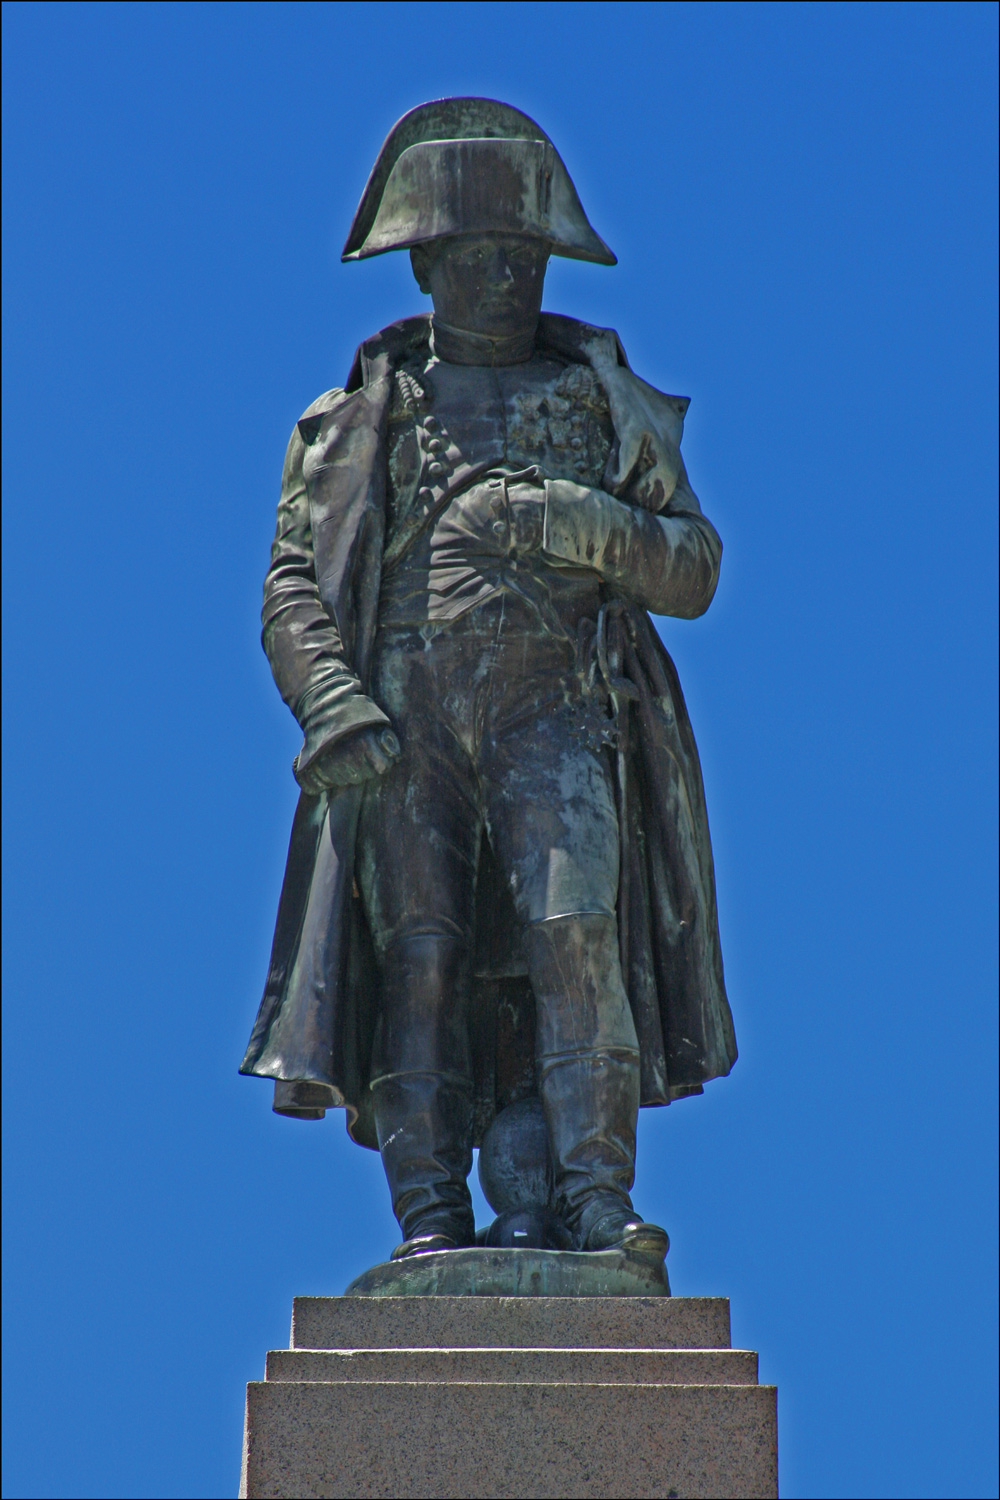 Statue of Napoleon on la Place d'Austerlitz